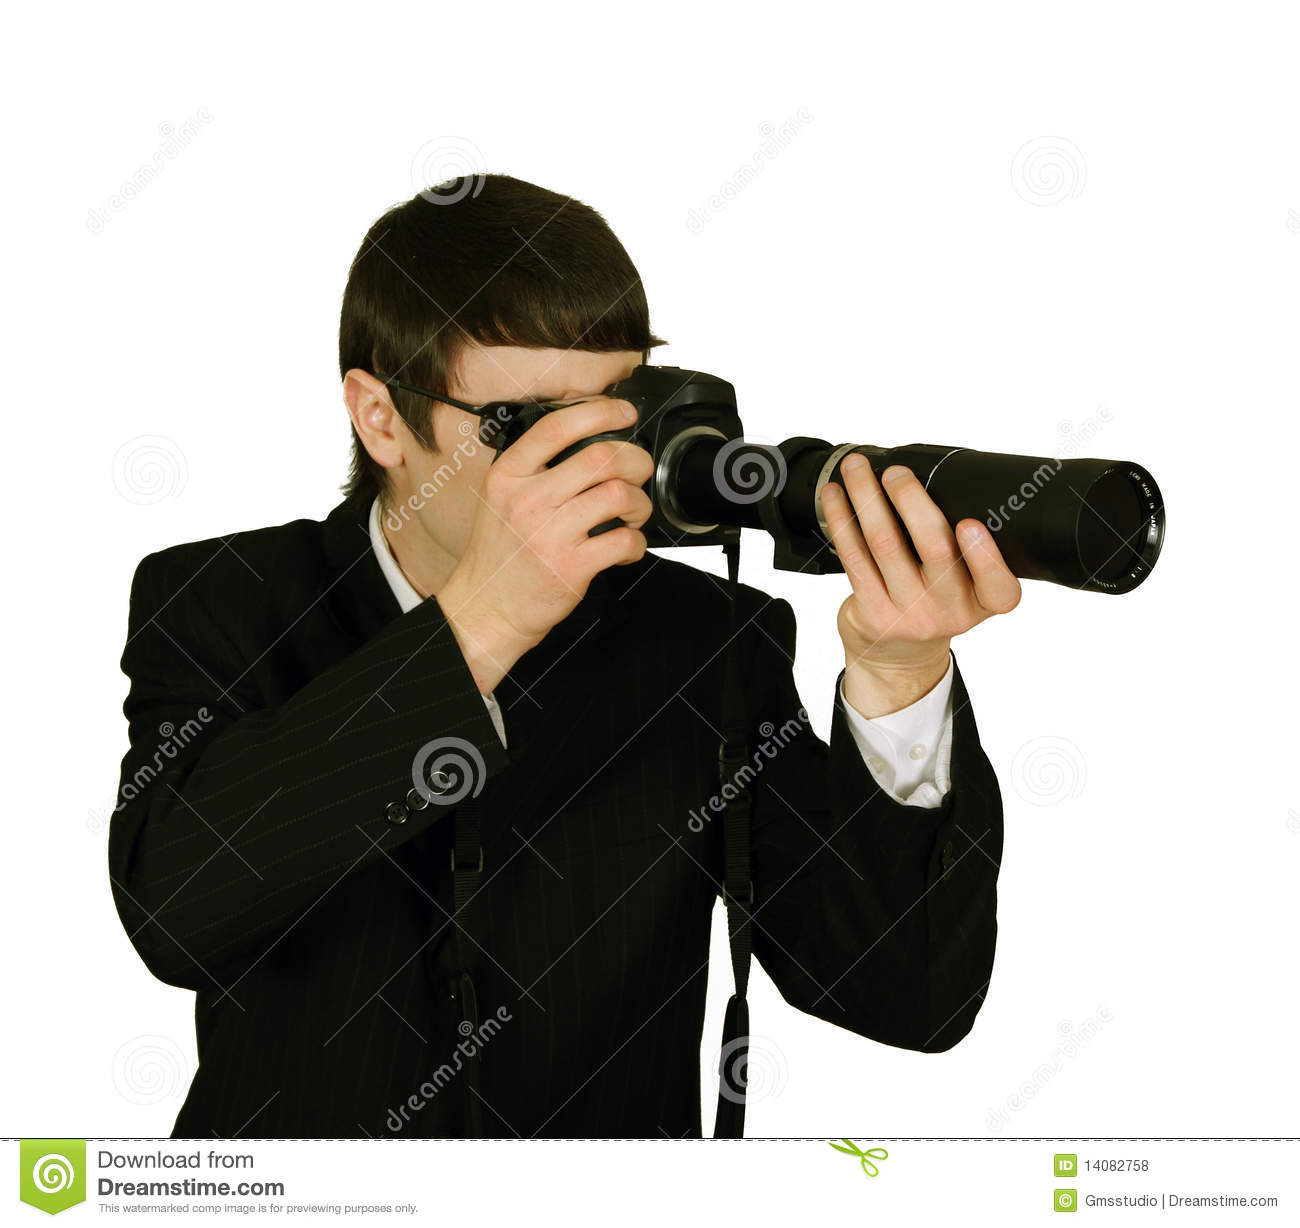 The World S Best Photos Of Guns And Spy: Secret Agent Spy With Camera Stock Photo